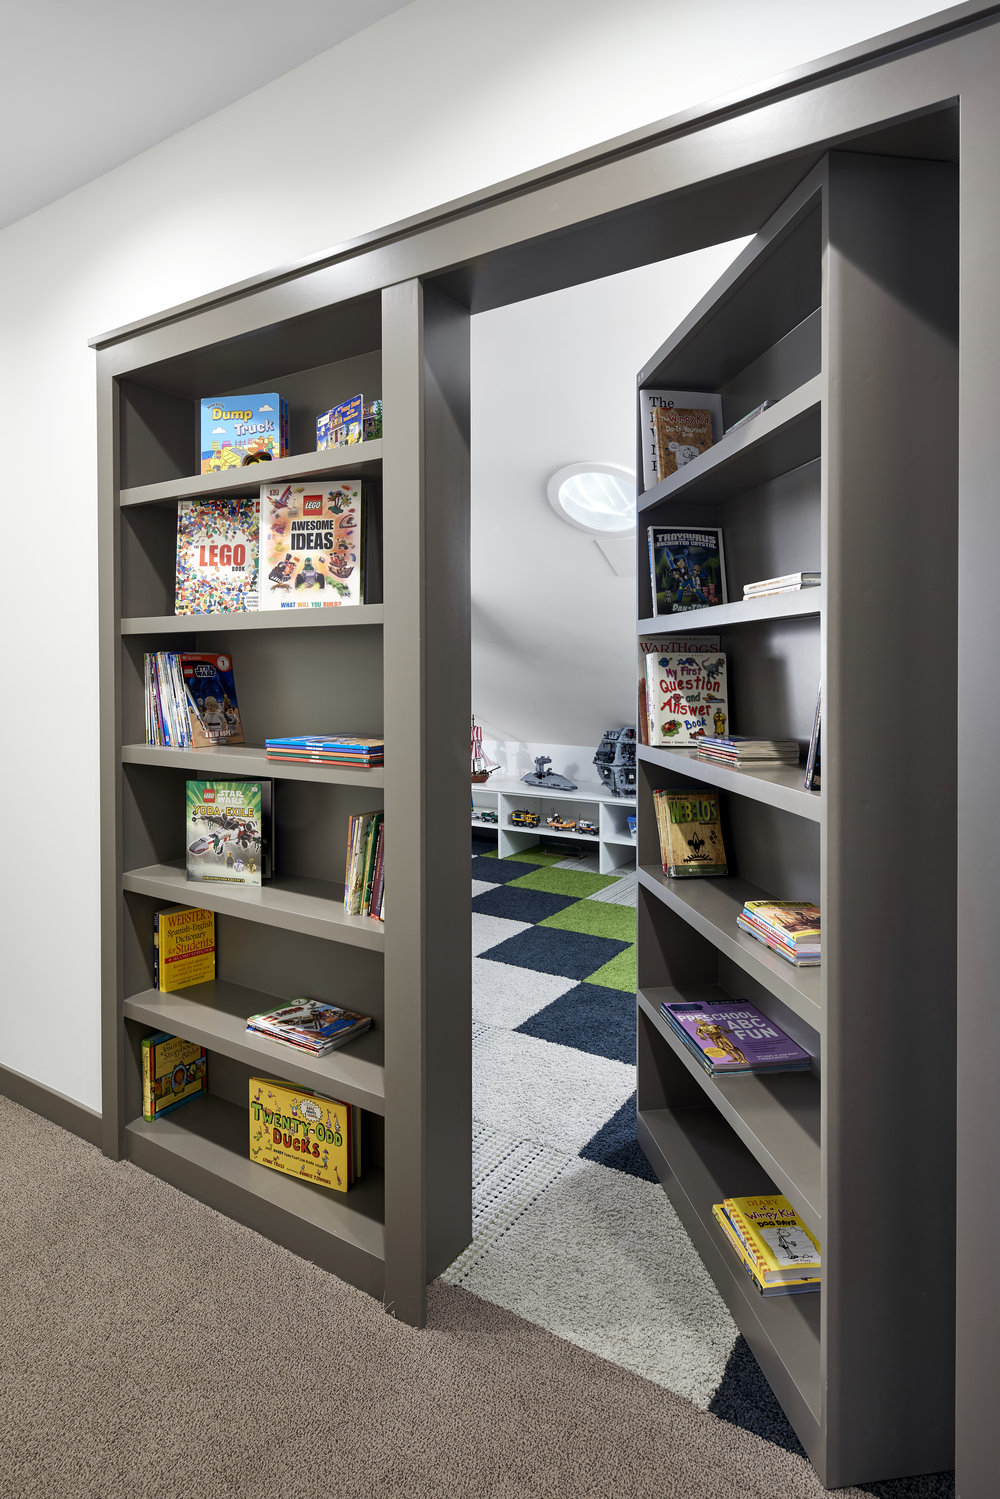 Toy room hidden behind bookcases, designed by NewStudio Architecture